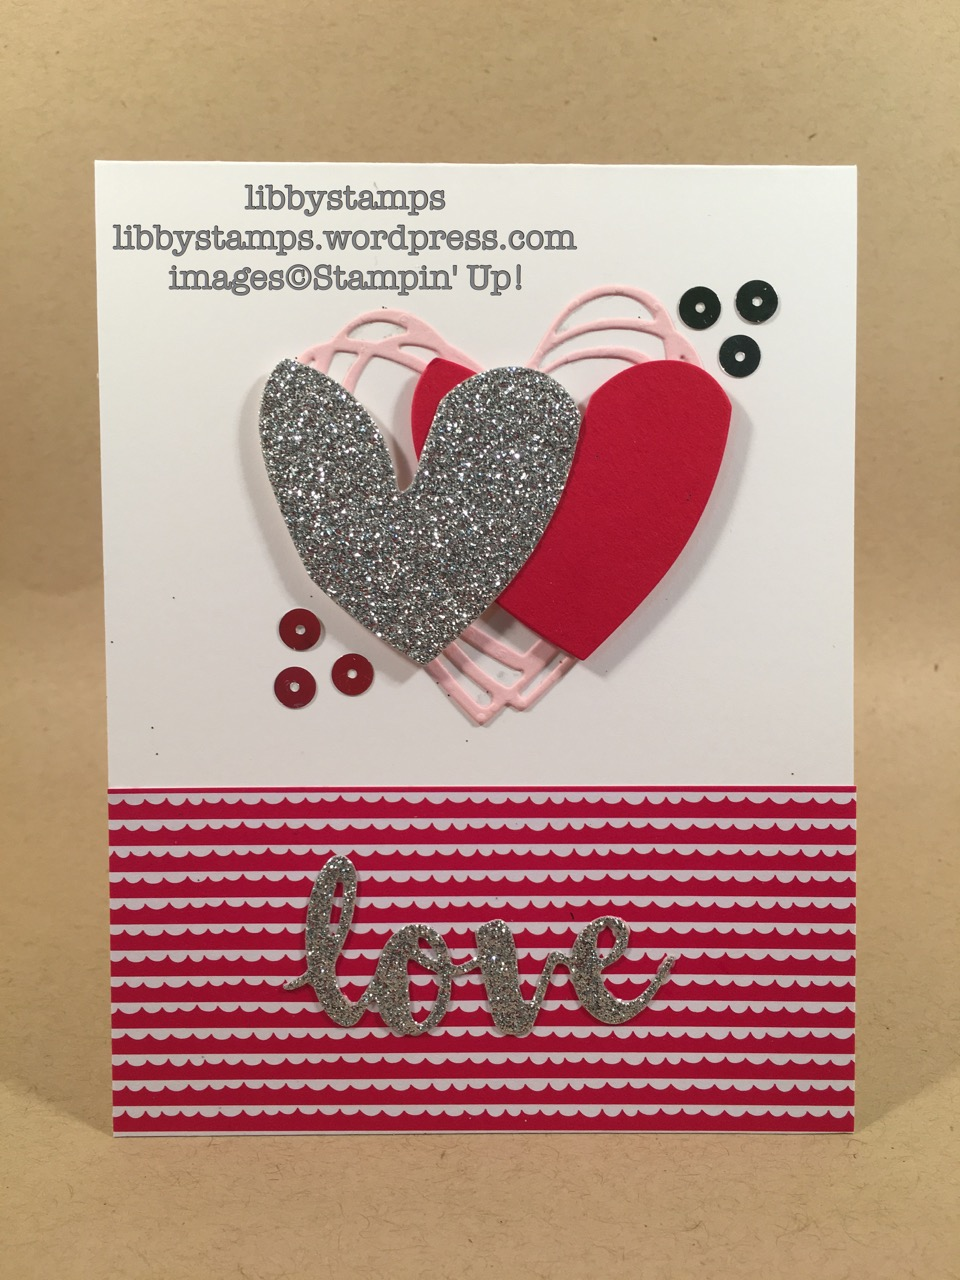 libbystamps, stampin up, Sunshine Wishes Thinlits, Sending Love DSP Stack